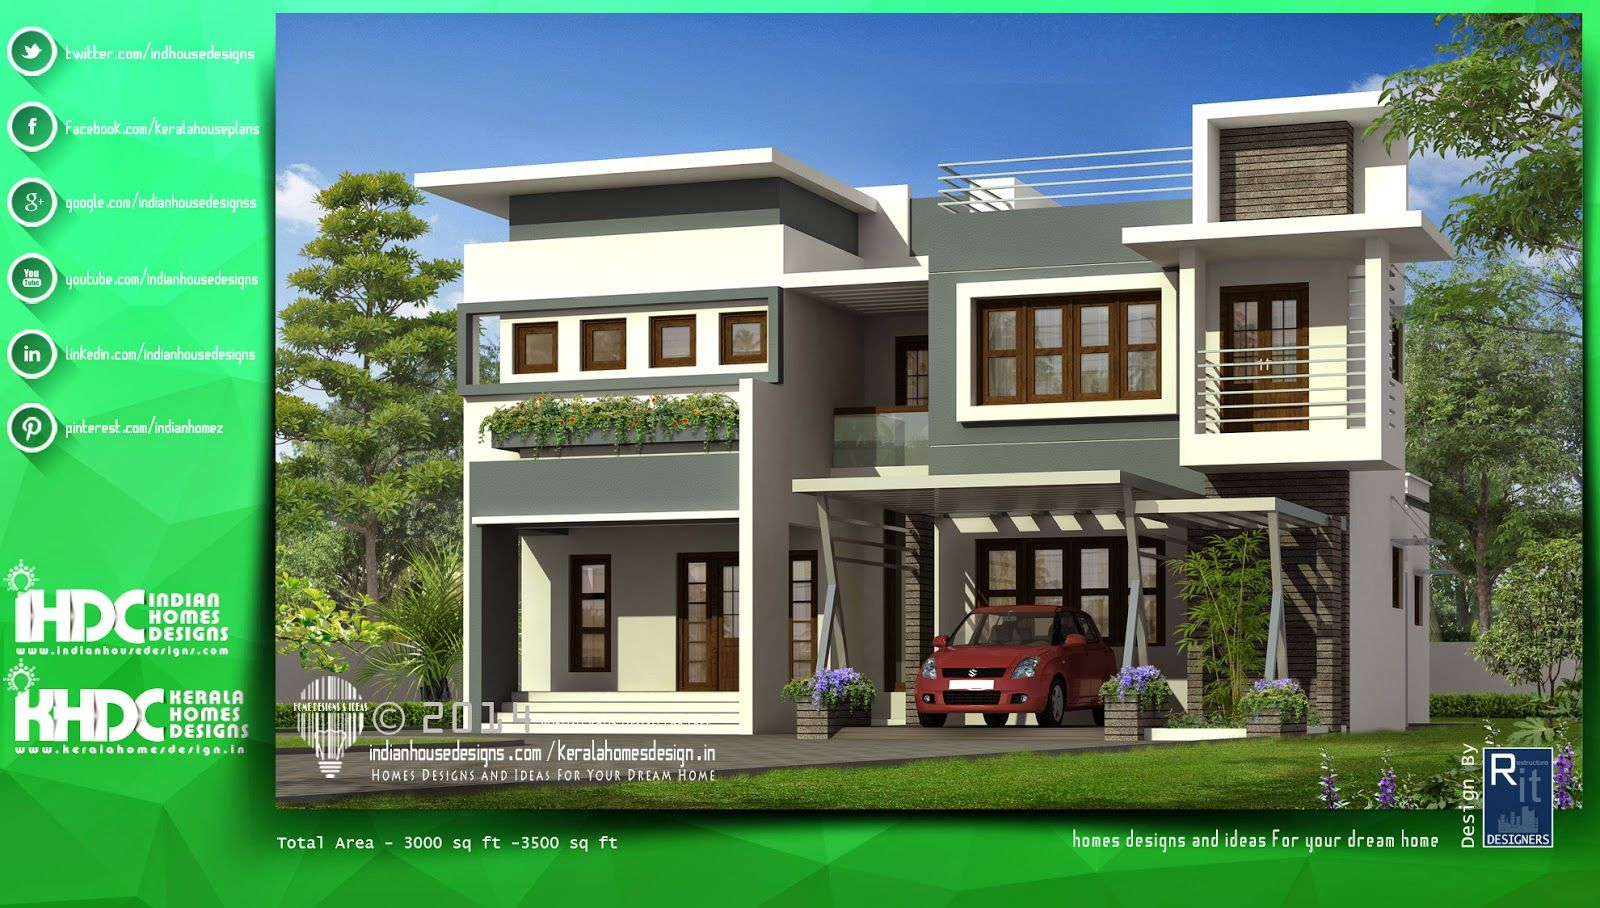 Modern Home Plans Designed By Rit Designers You Can Buildup Your Dream Or A  House Which One Has In Your Mind With The Help Of Rit Designers.